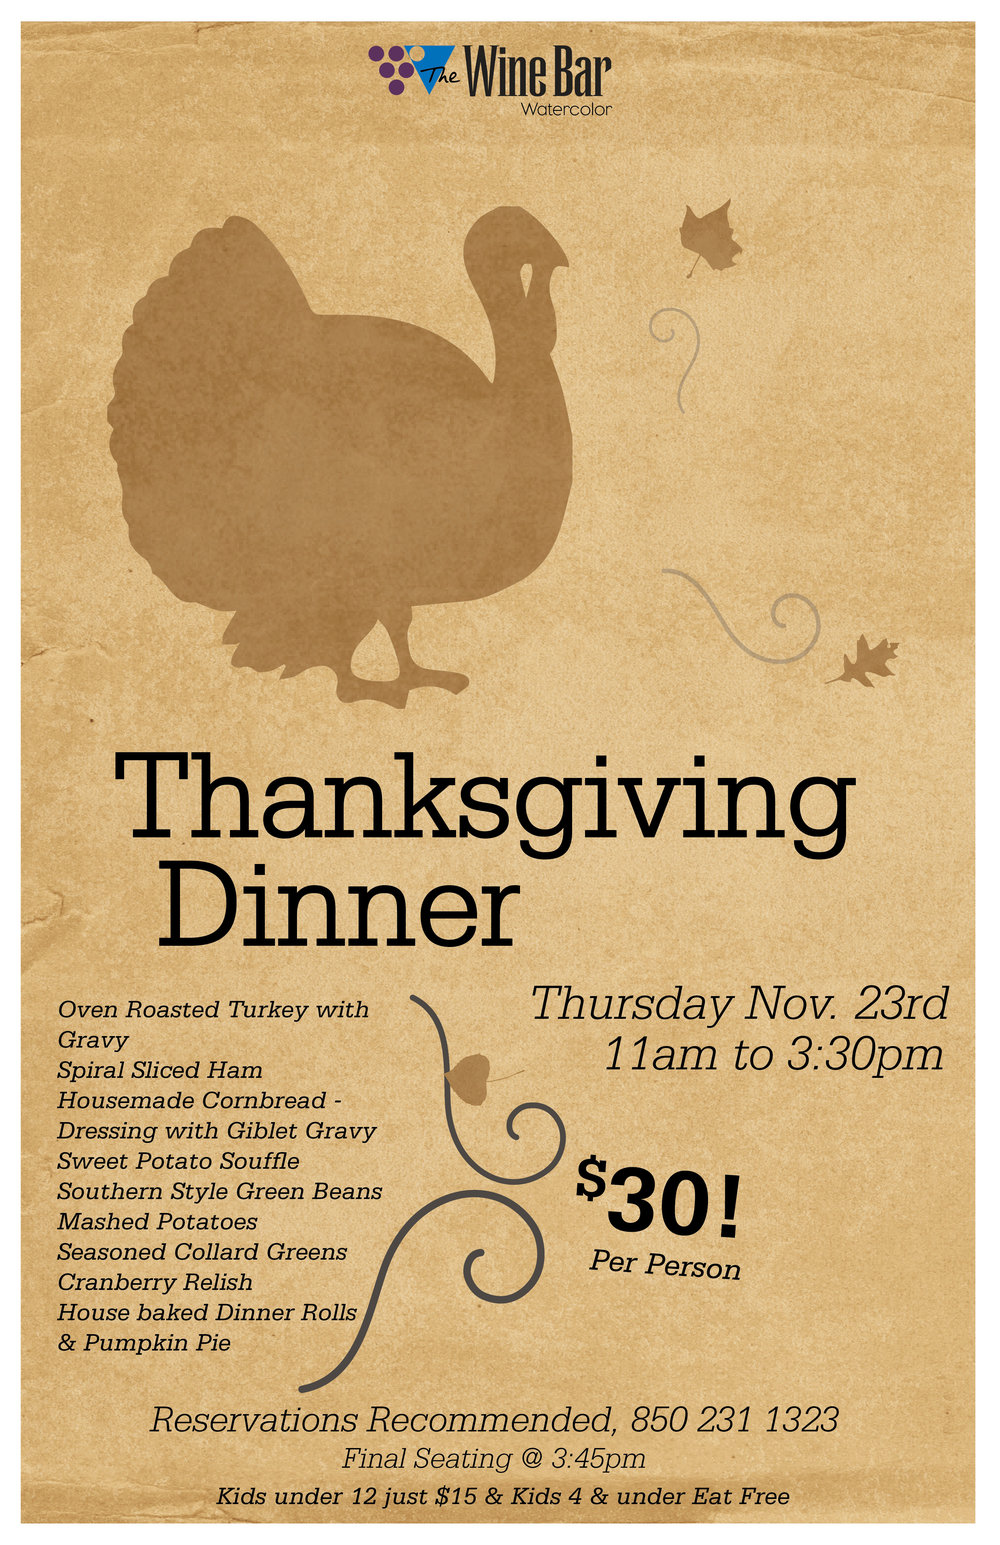 2017_Thanksgiving Dinner Poster.jpg